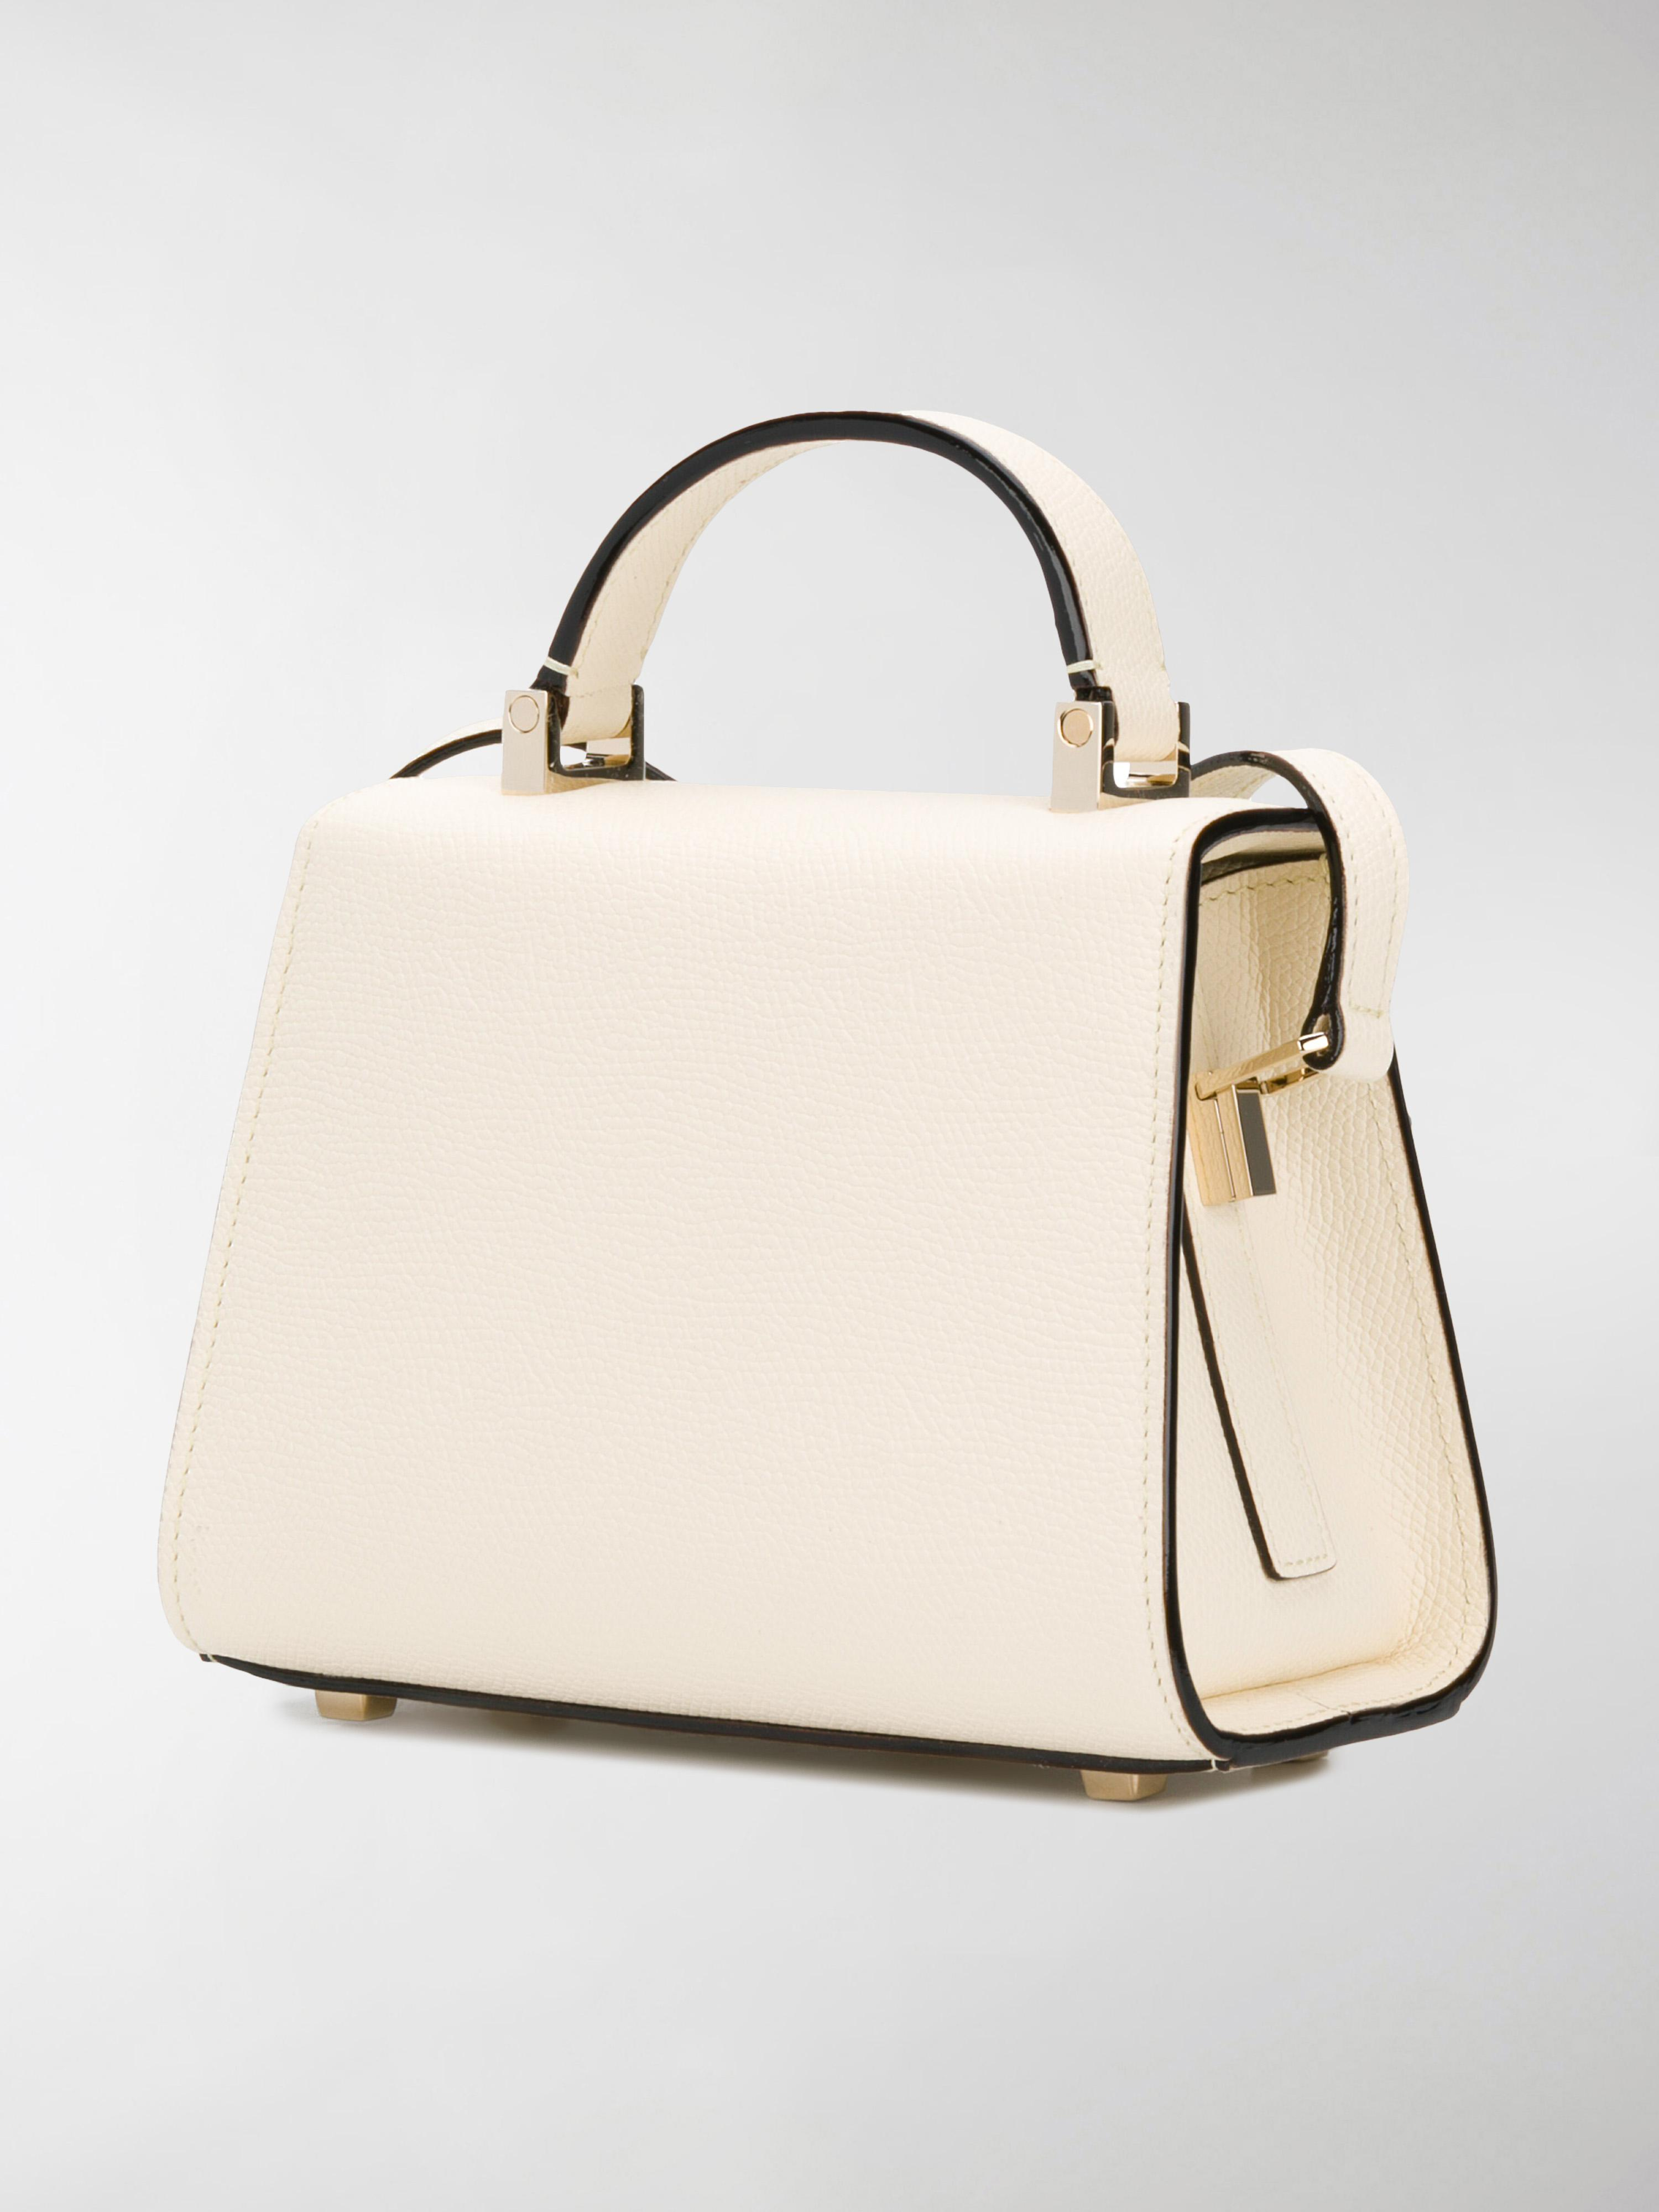 Valextra Leather Micro Iside Tote in Natural